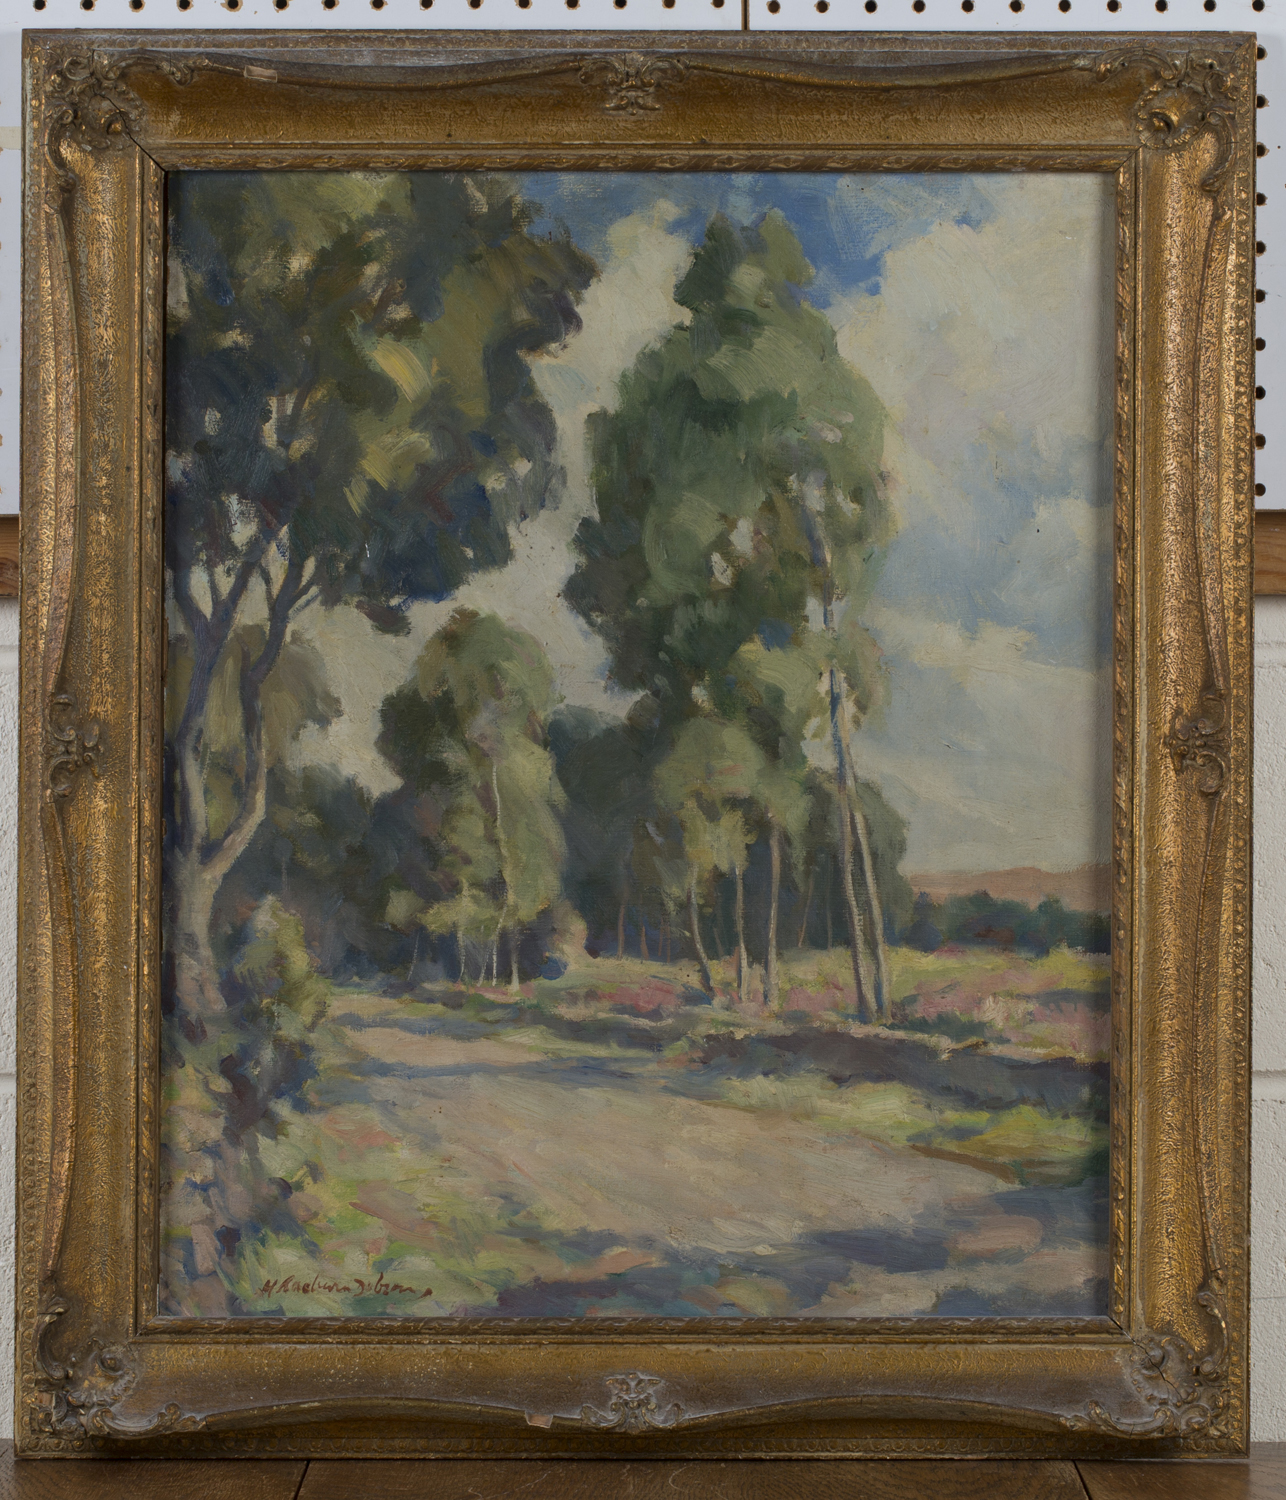 Lot 1 - Henry Raeburn Dobson - Landscape with Trees, oil on canvas-board, signed, 60cm x 49.5cm, within a